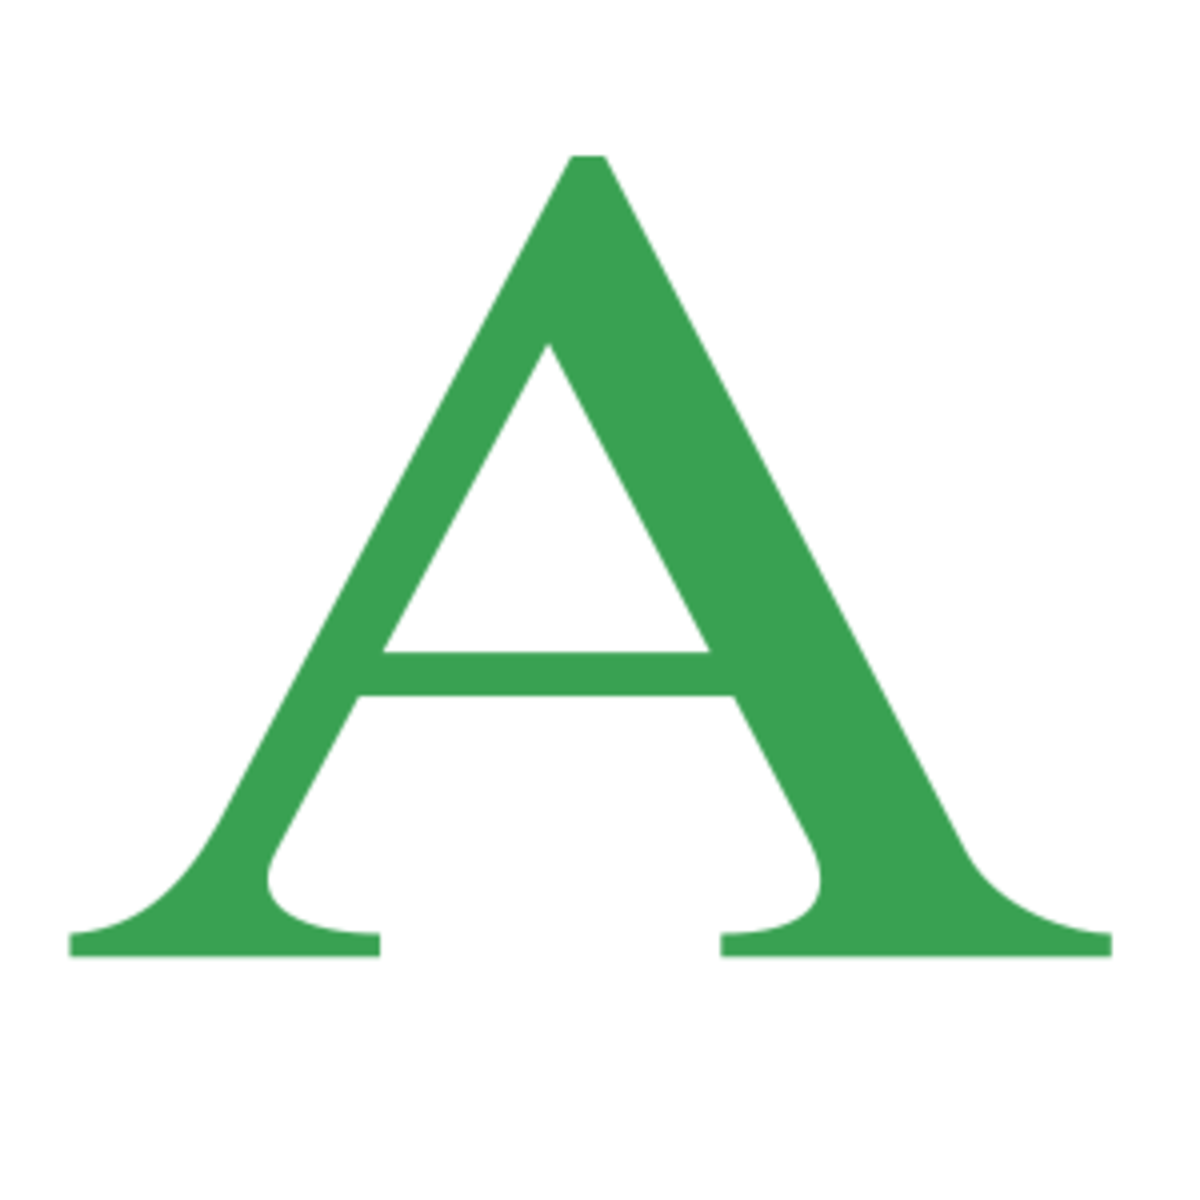 A is for angle